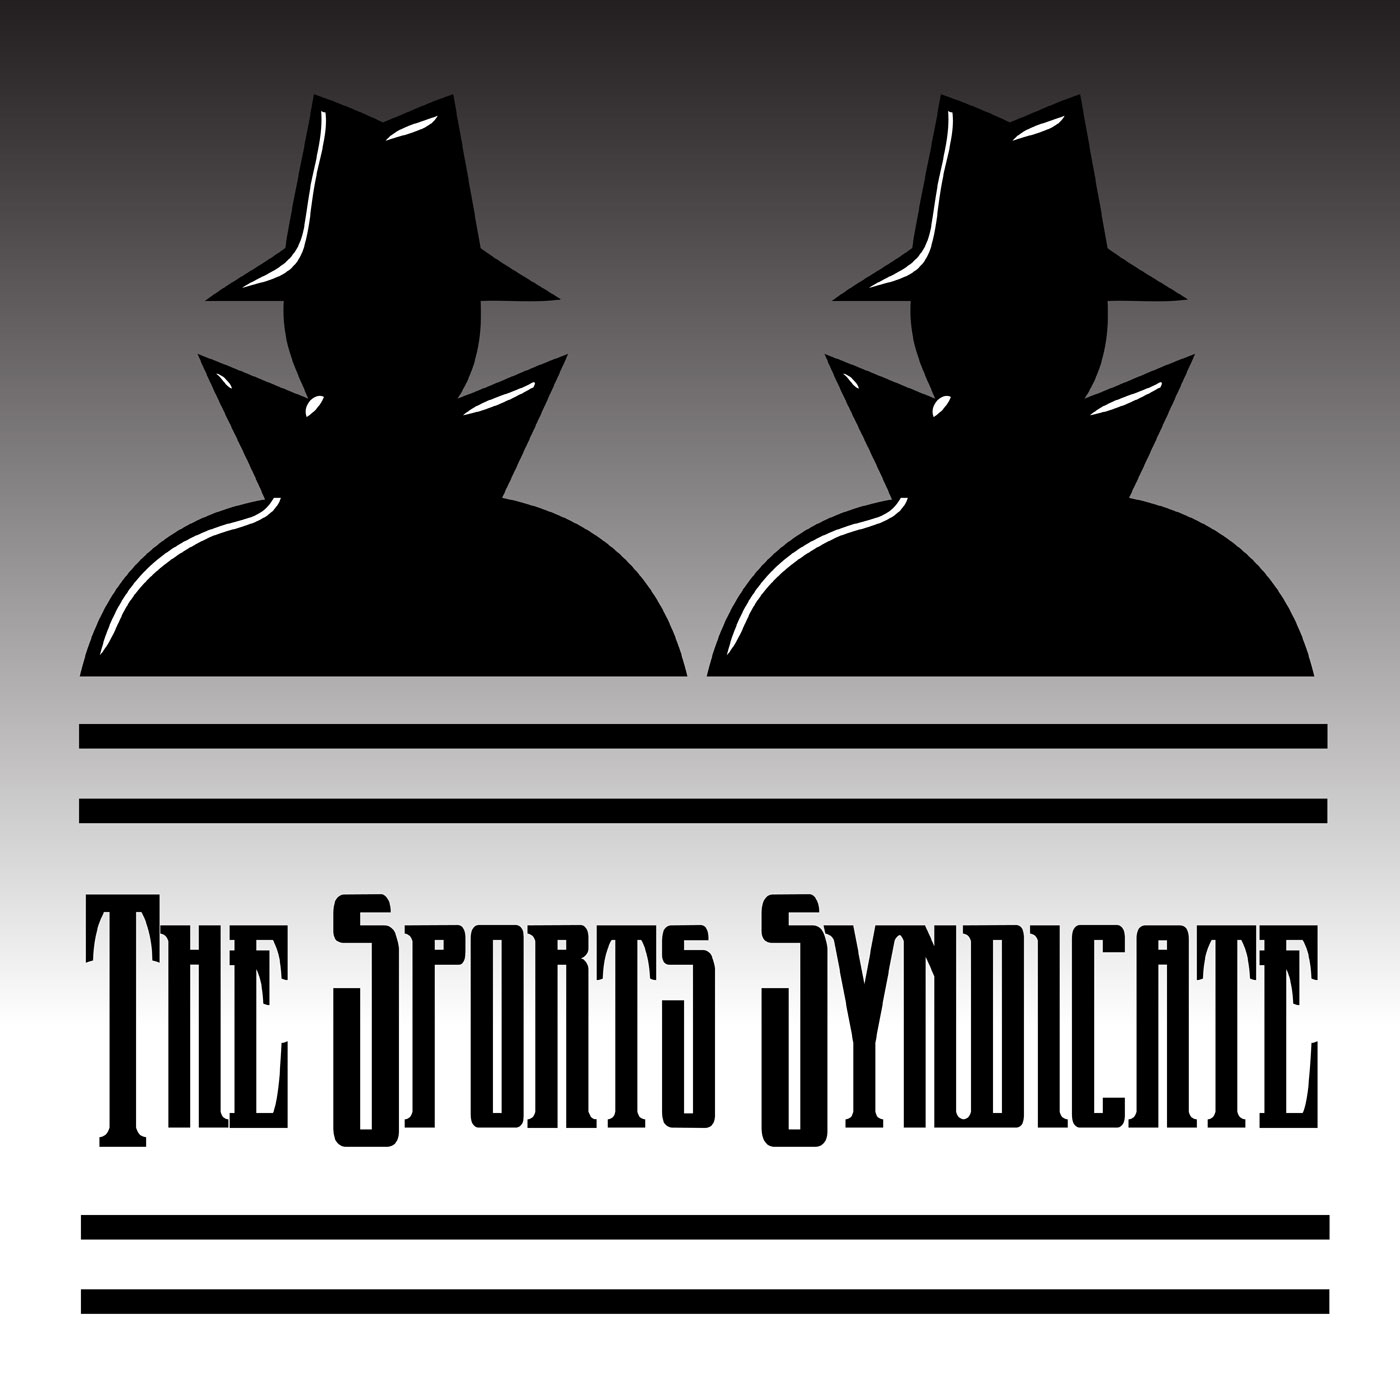 NTN » The Sports Syndicate